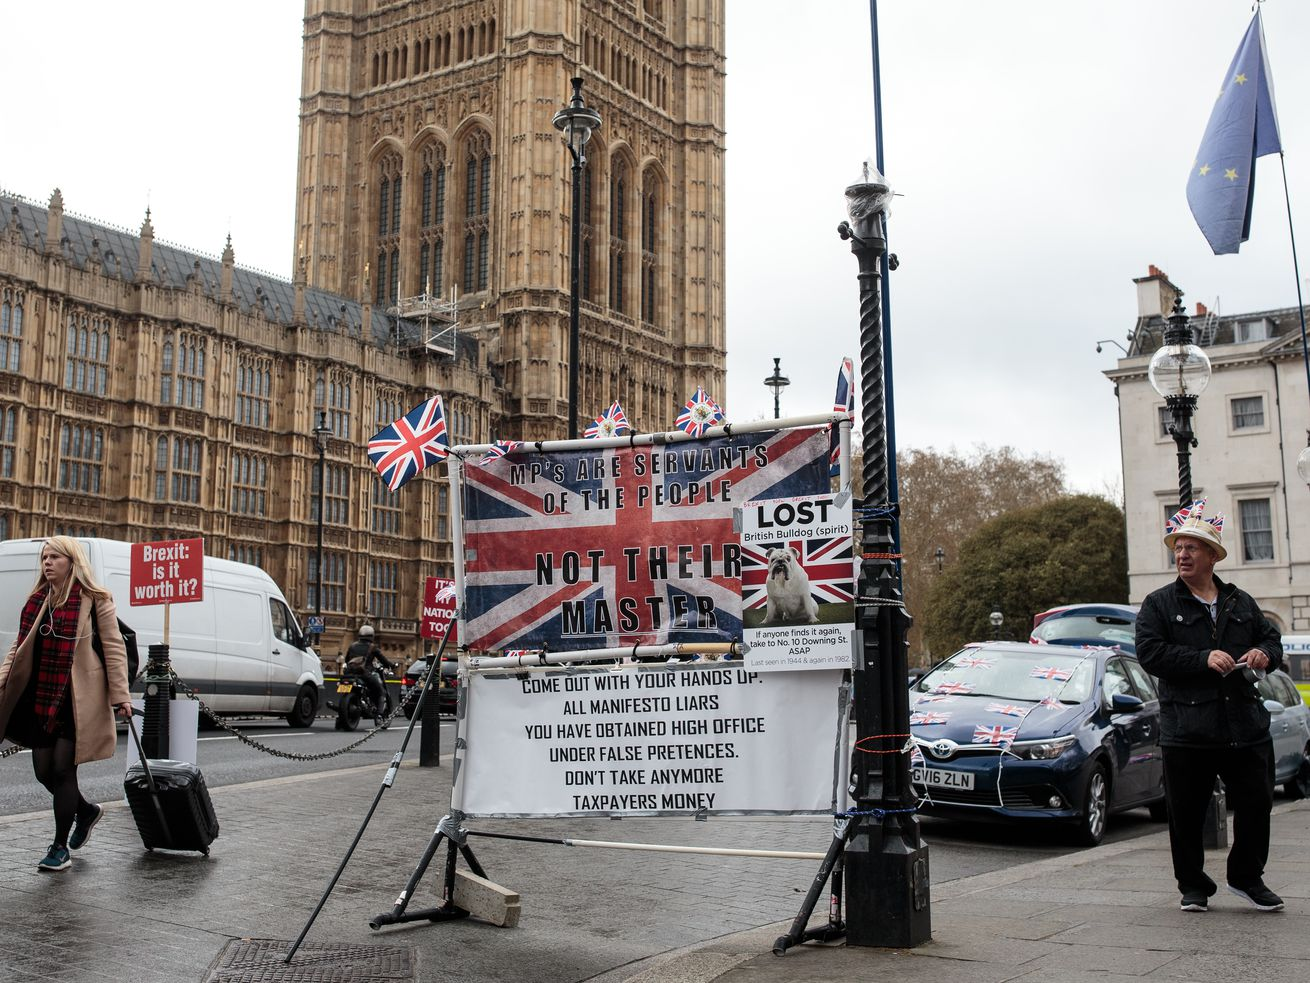 A pro-Brexit banner outside of Westminster in London.